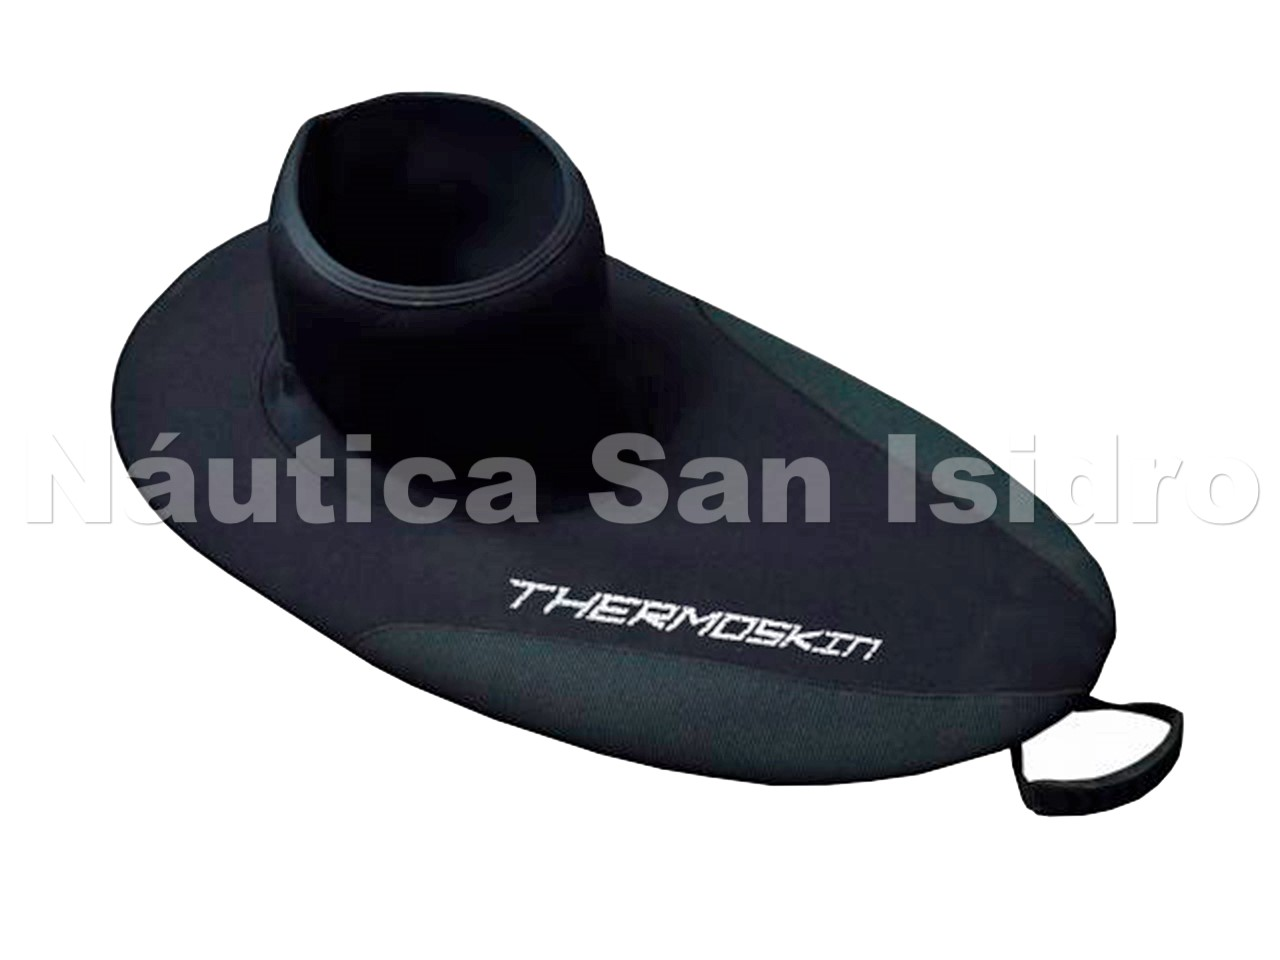 CUBRECOCKPIT NEOPRENE THERMOSKIN